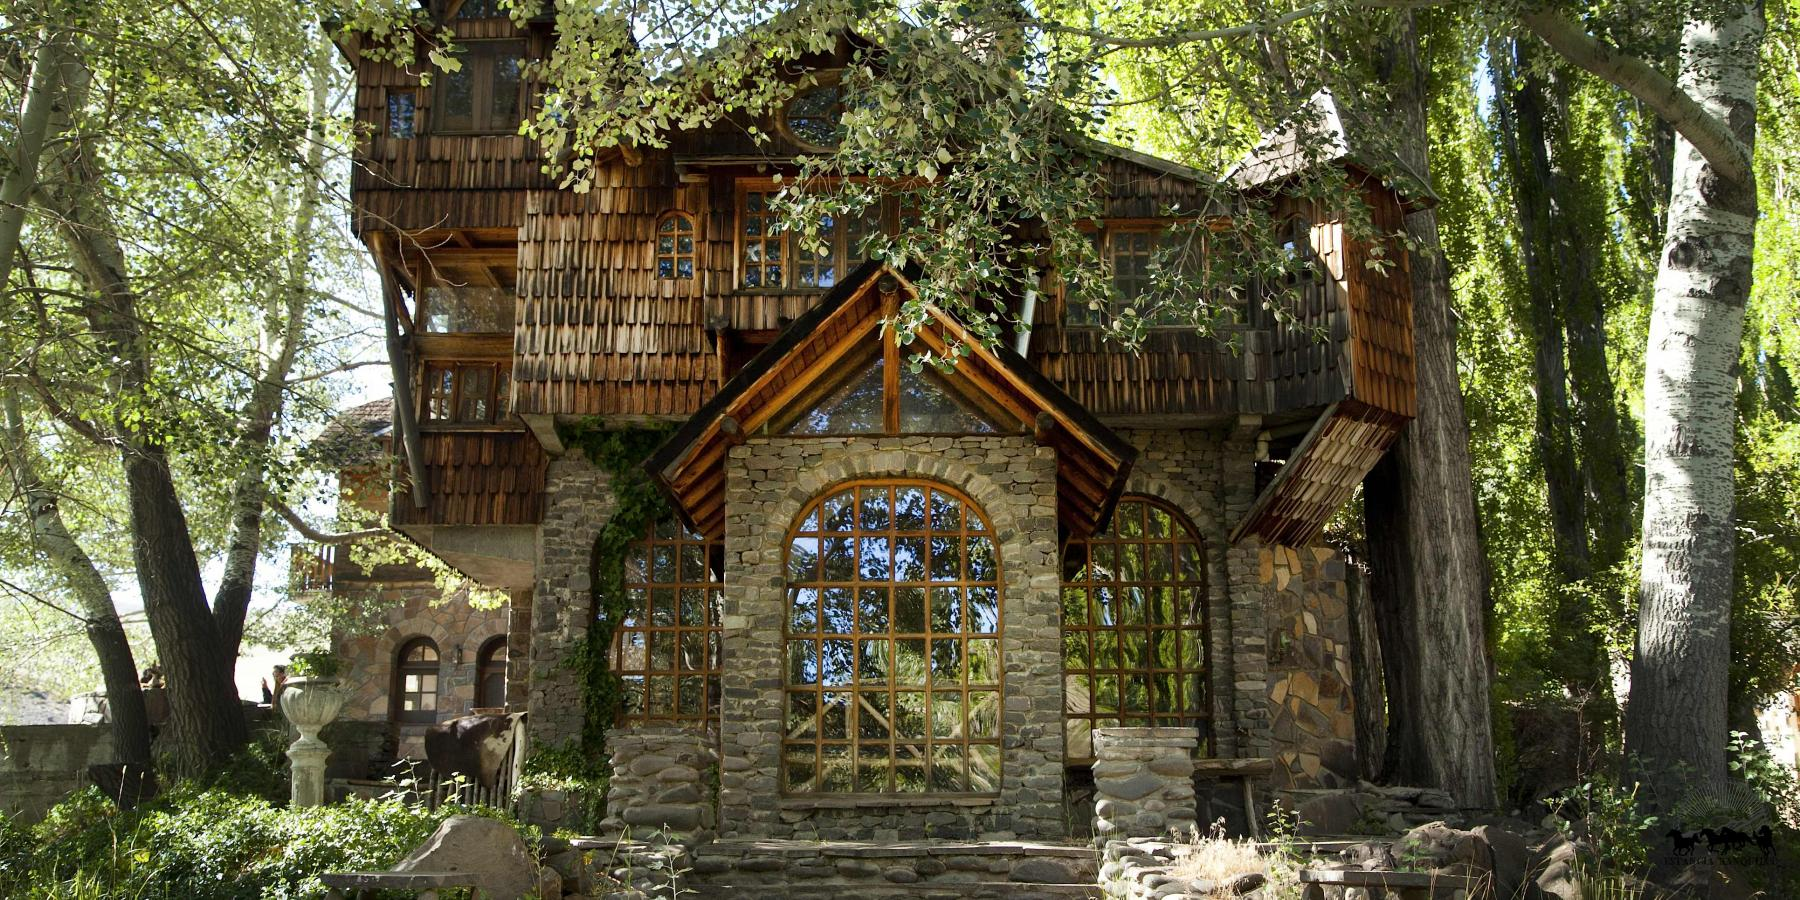 Estancia Ranquilco's wood and stone guest lodge in the trees in Patagonia Argentina